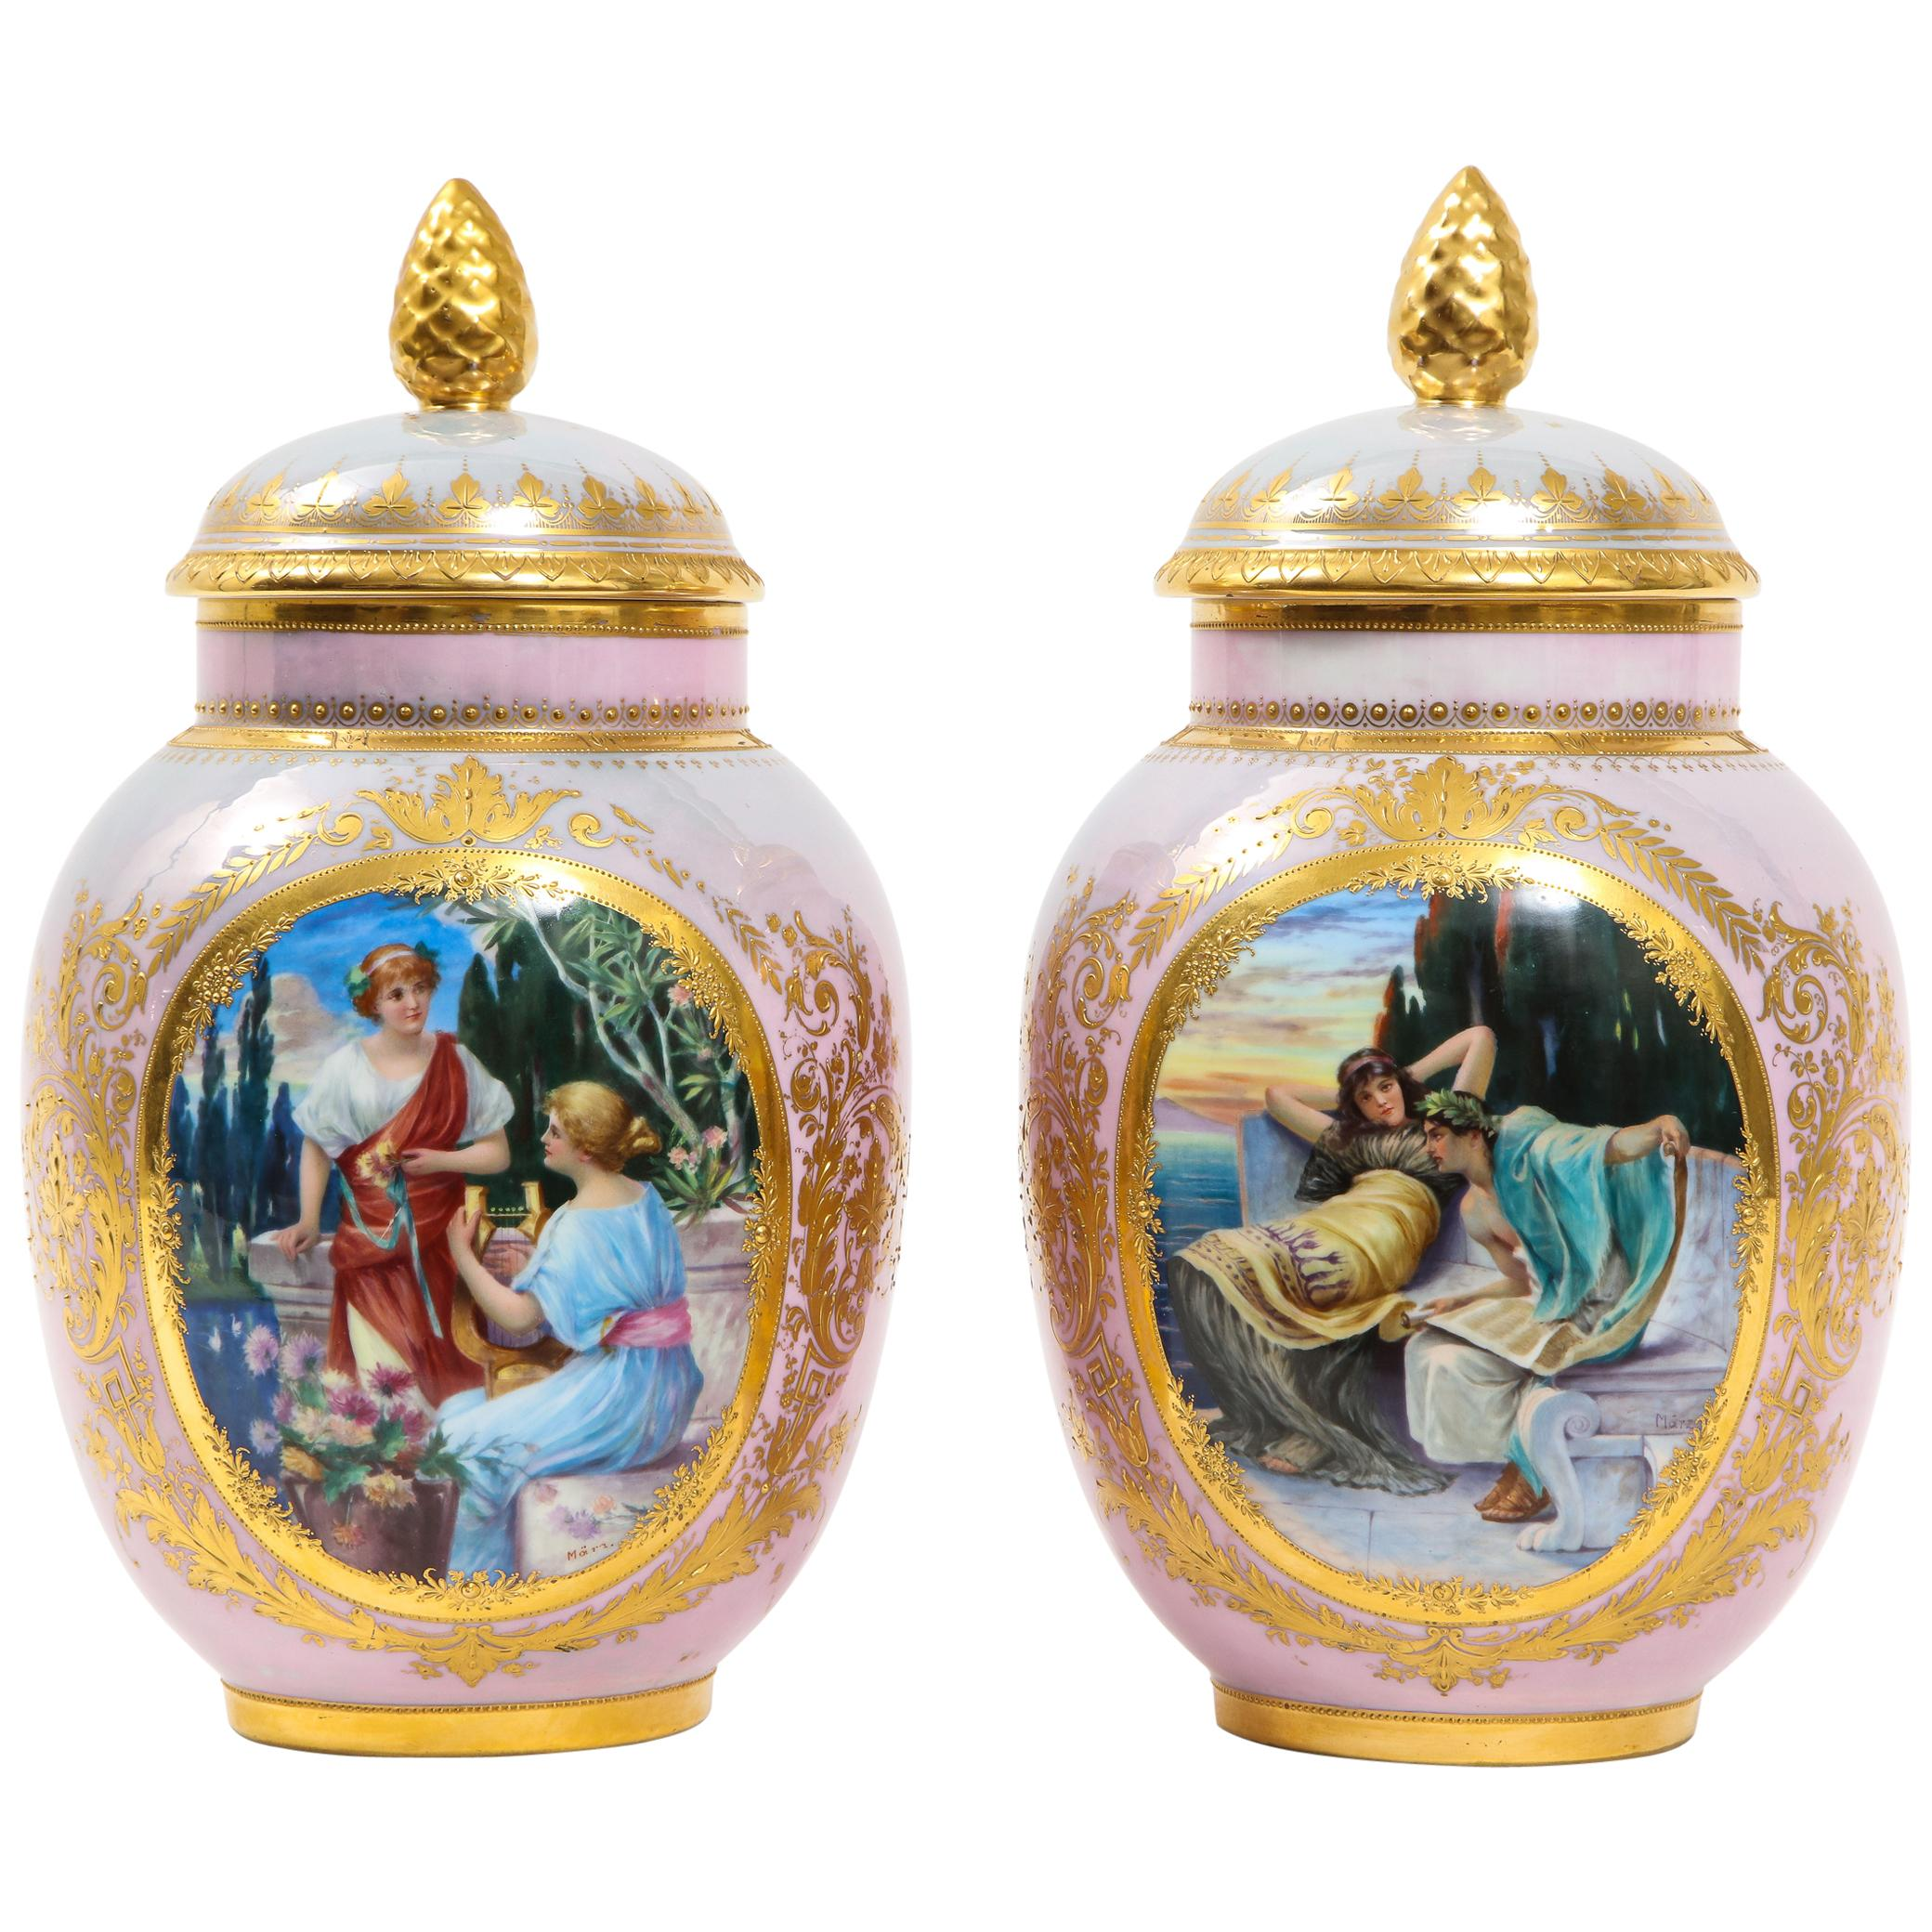 Pair of Royal Vienna Porcelain Iridescent Pink Vases with Neoclassical Scenes